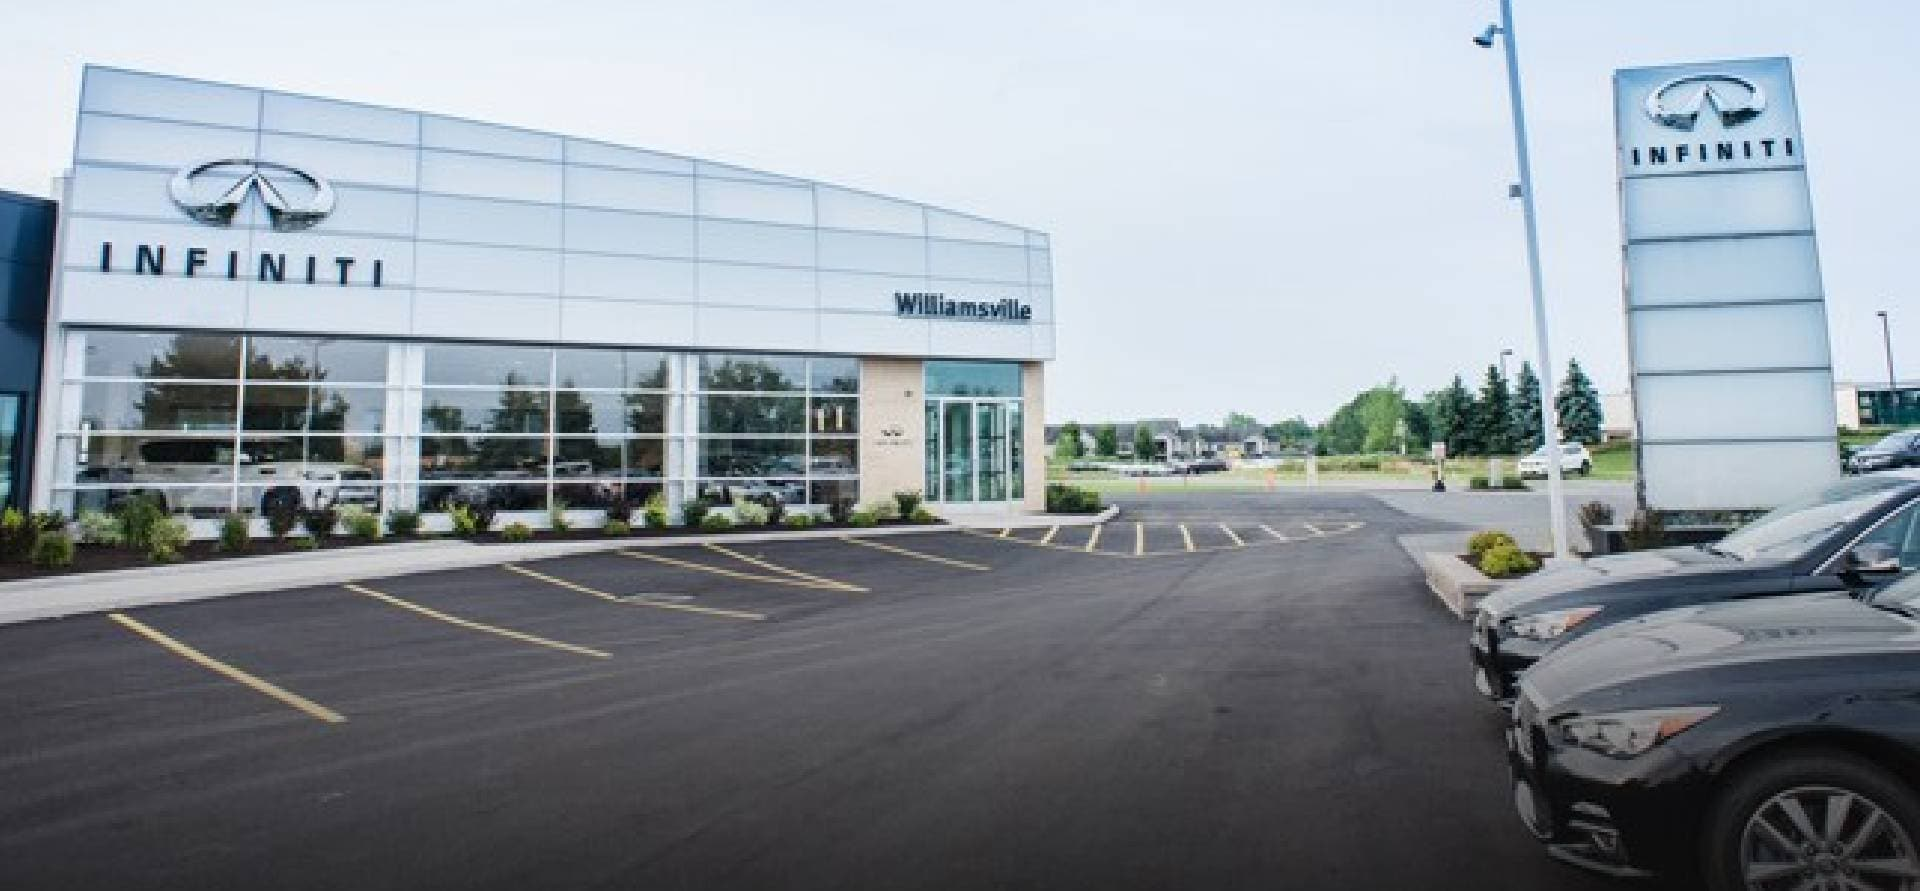 West Herr Infiniti, dealership exterior